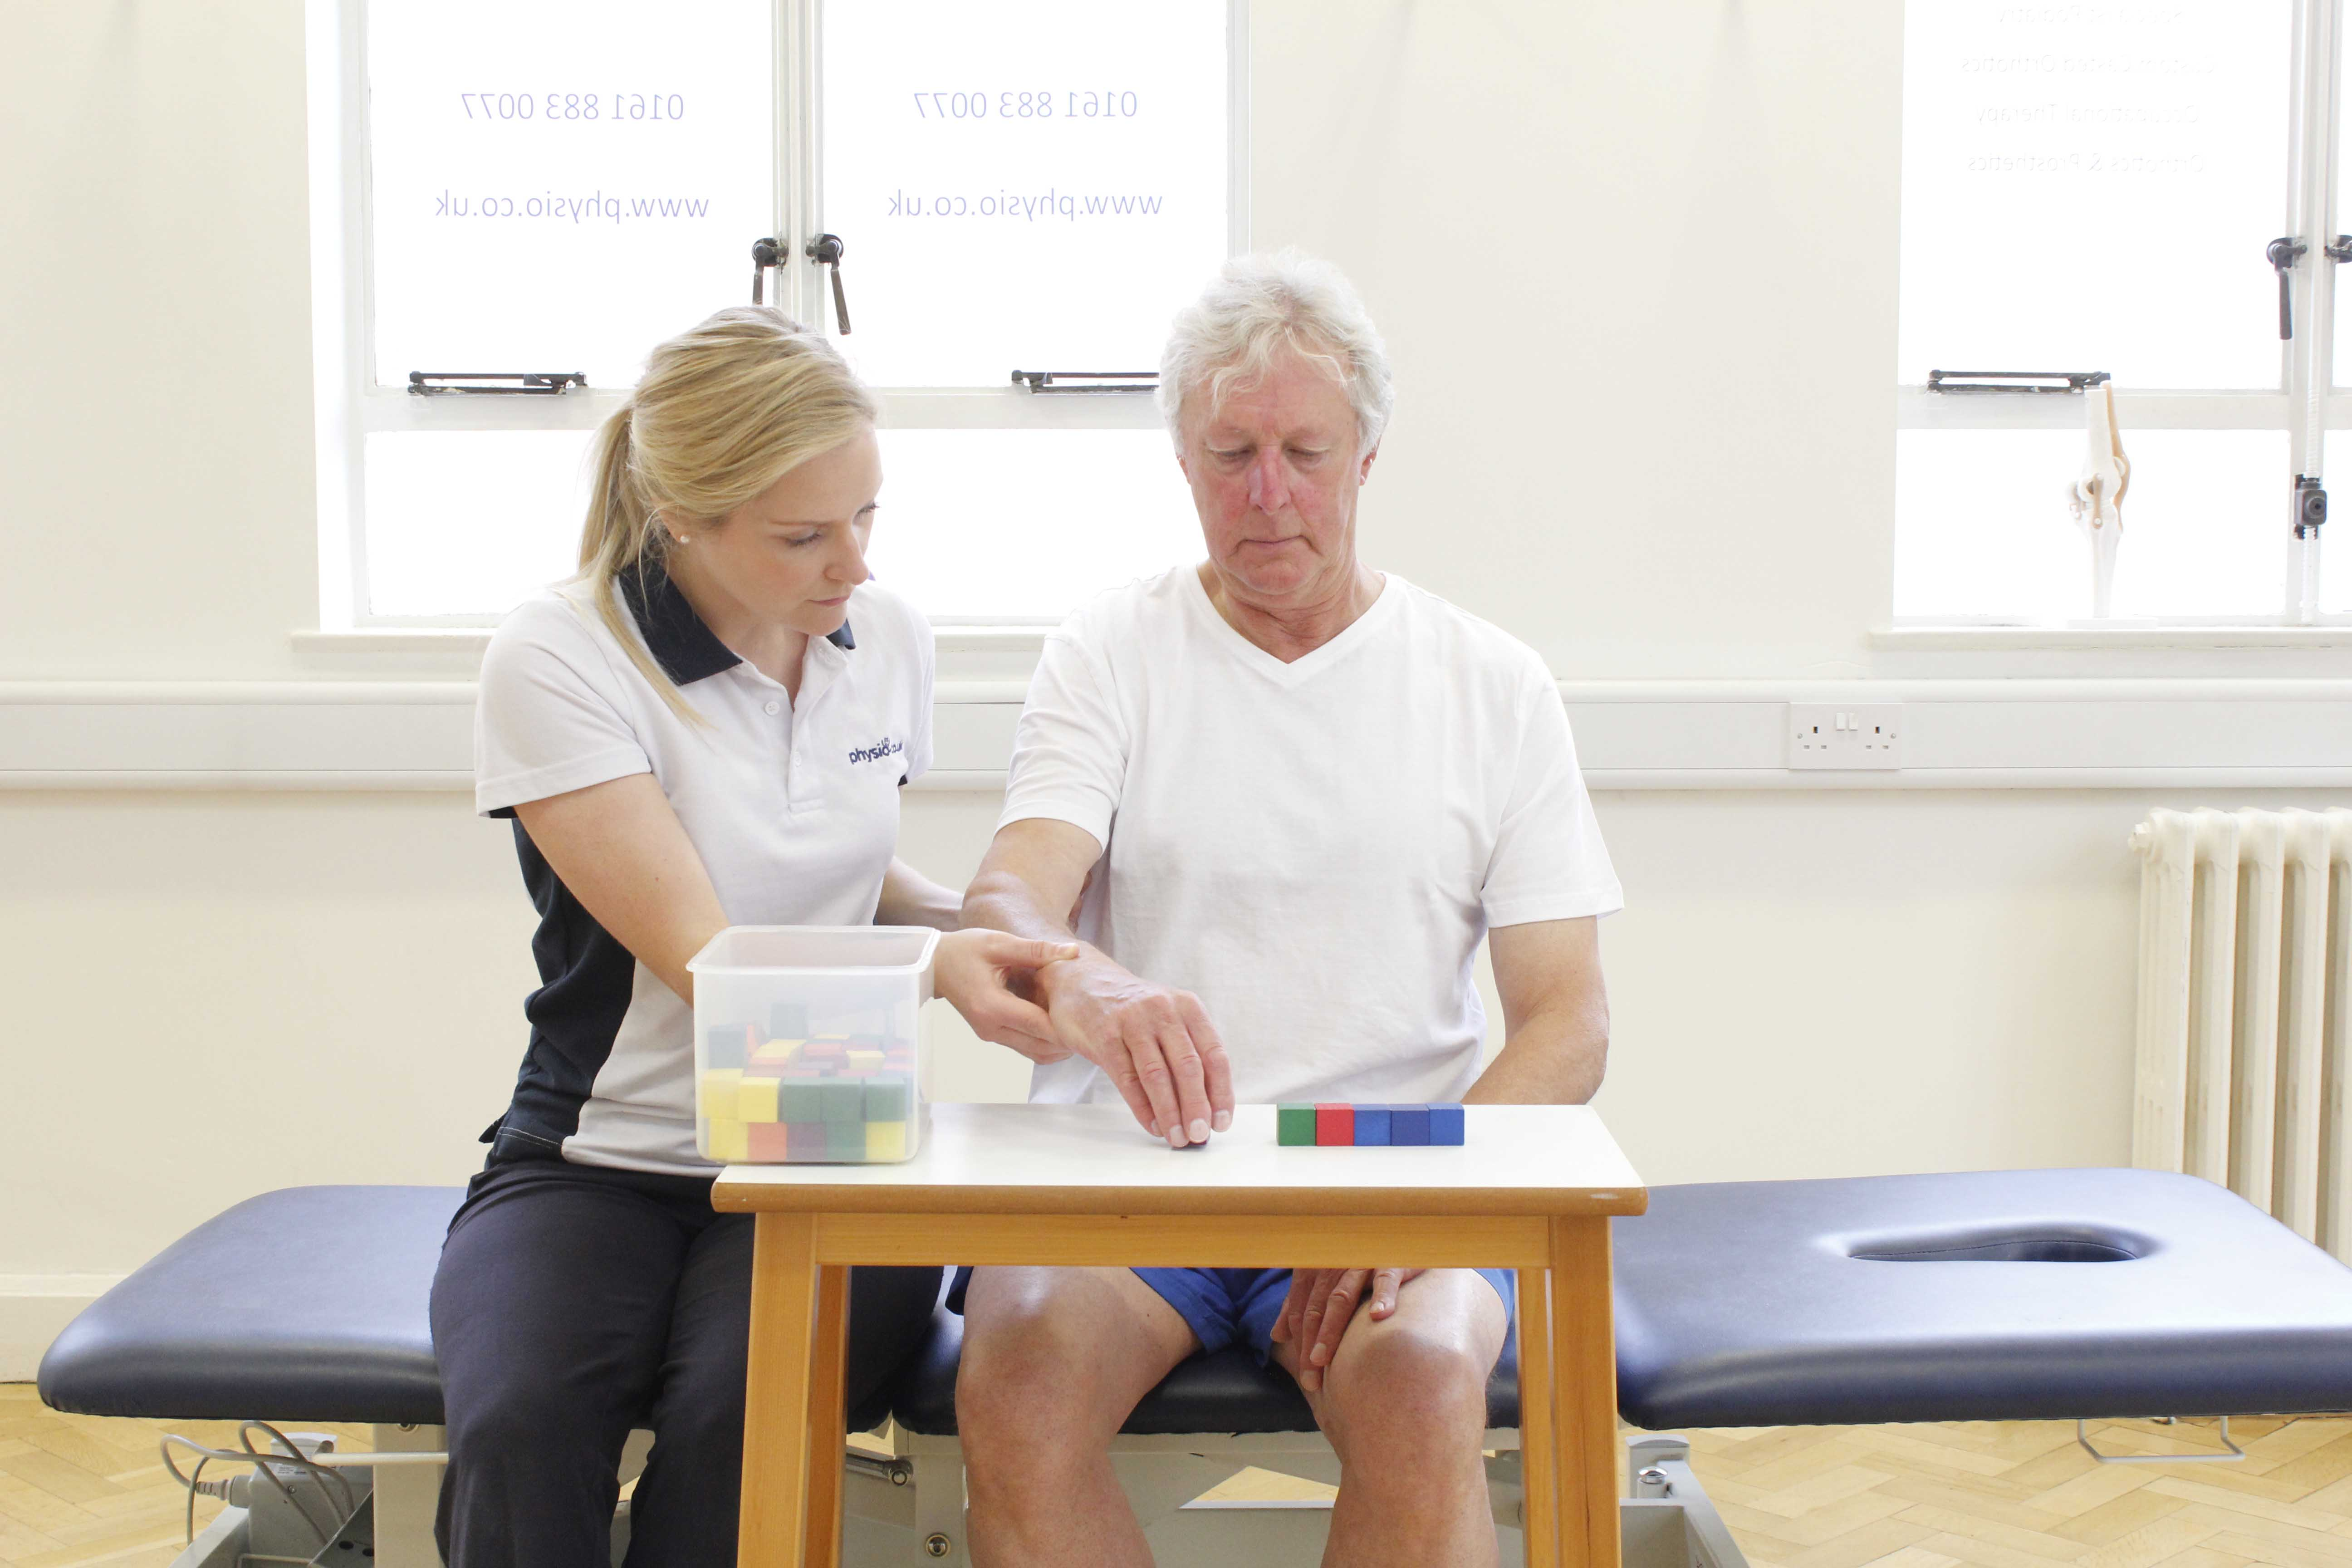 Specilaist neurological physiotherapist supervising fone motor skill and cognition exercises